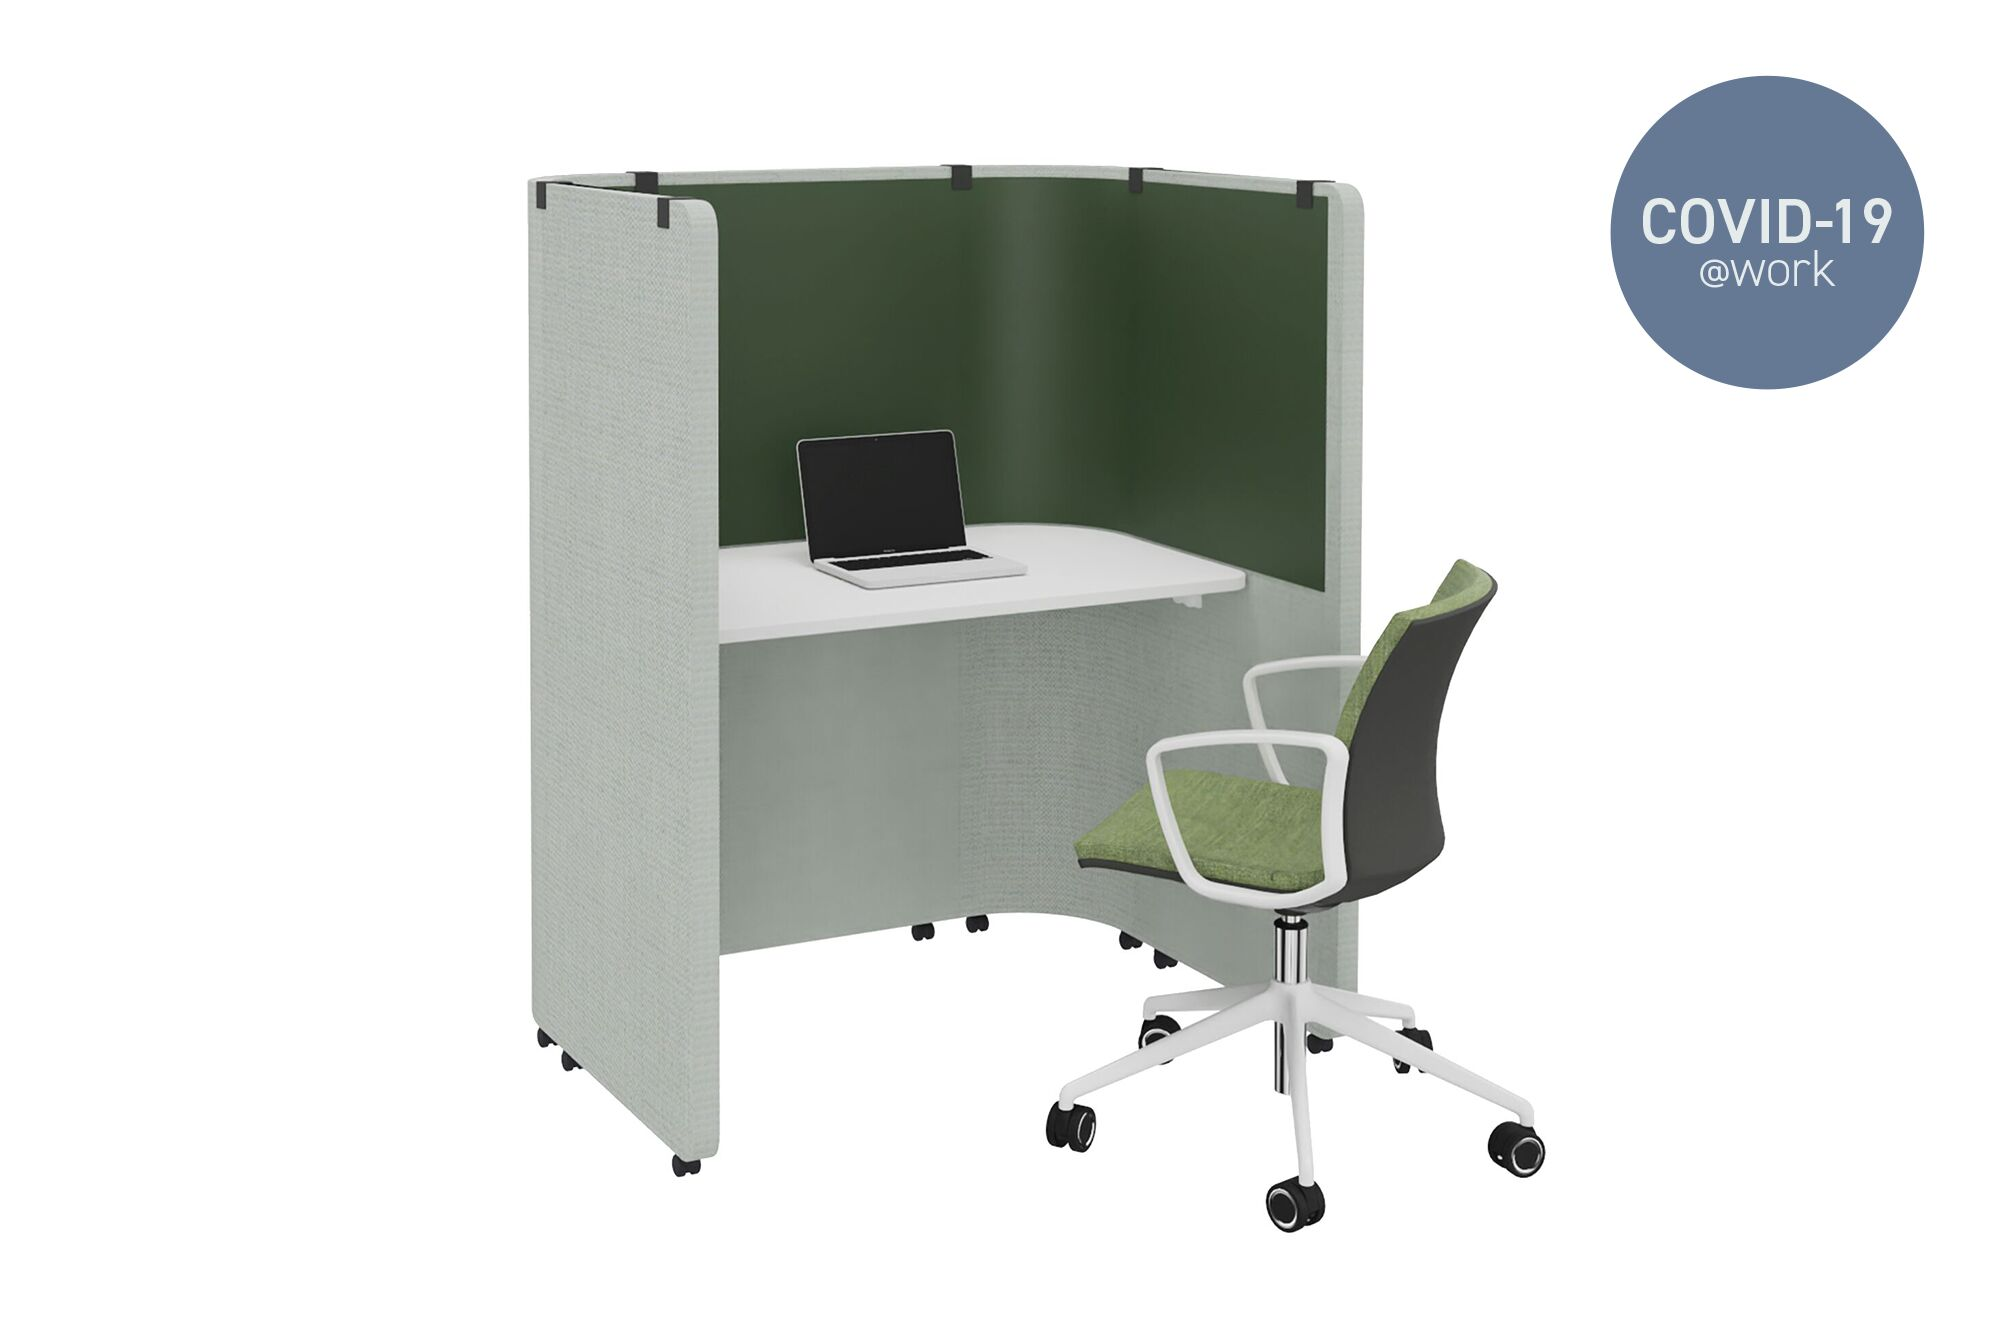 Large Royal Ahrend Concentration Corner solo desk in green on castors with hygenic panel and Well chair front left view with Covid 19 label